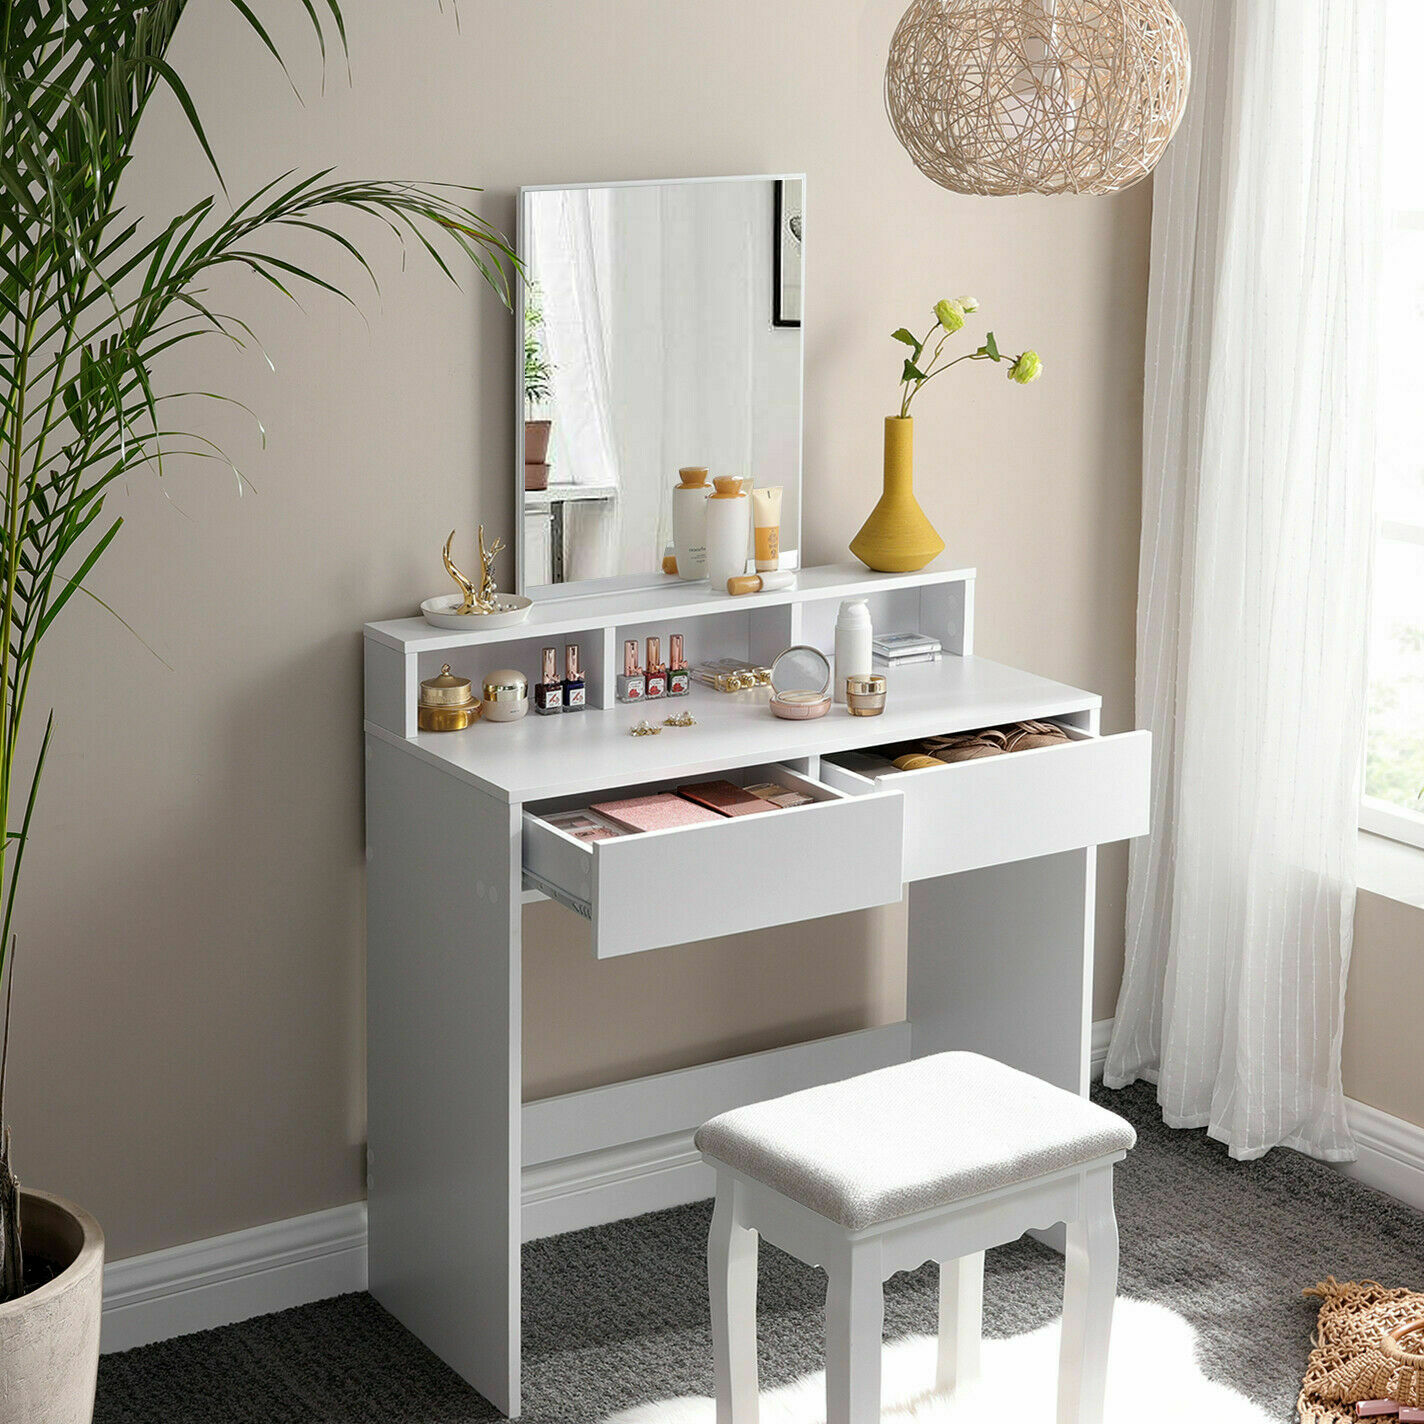 Coiffeuse moderne chambre table Maquillage Blanc 2 tiroirs Miroir